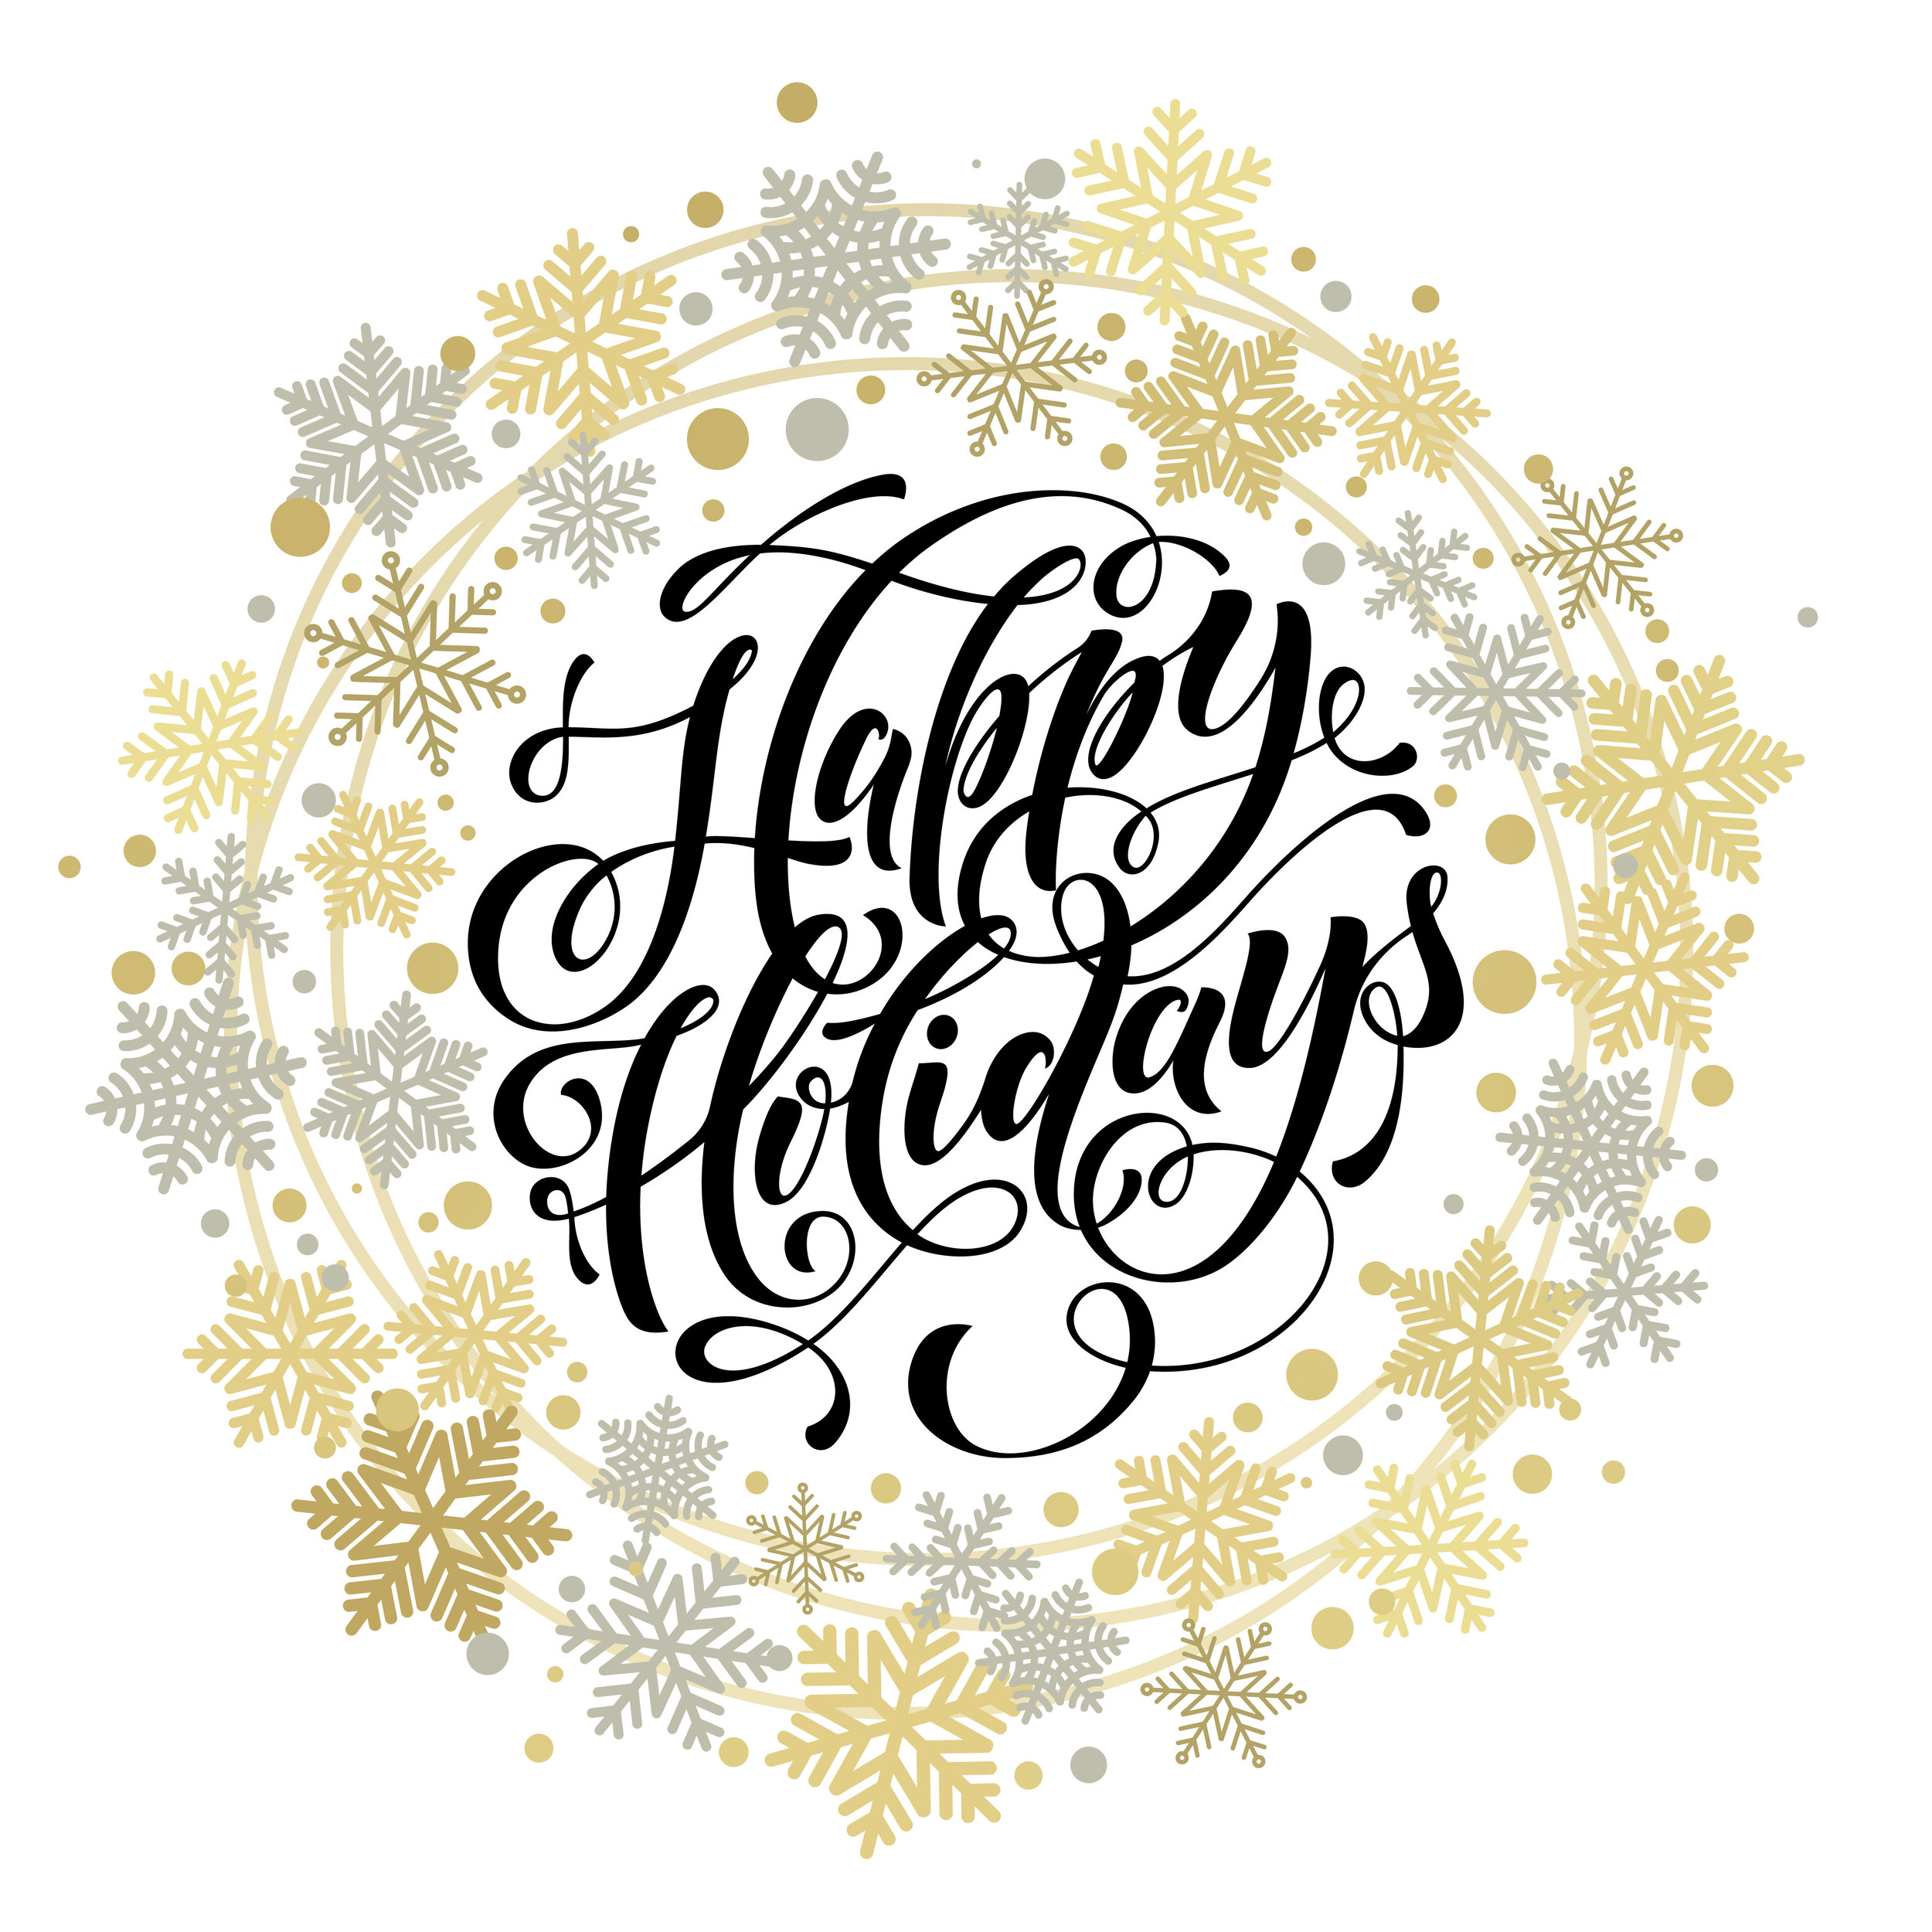 - Sealer Sales would like to wish everyone a happy holiday season and to a happy new year!Just a quick reminder about our holiday schedule:We will be closed Monday, December 25, 2017 and returning Tuesday, January 2, 2018.